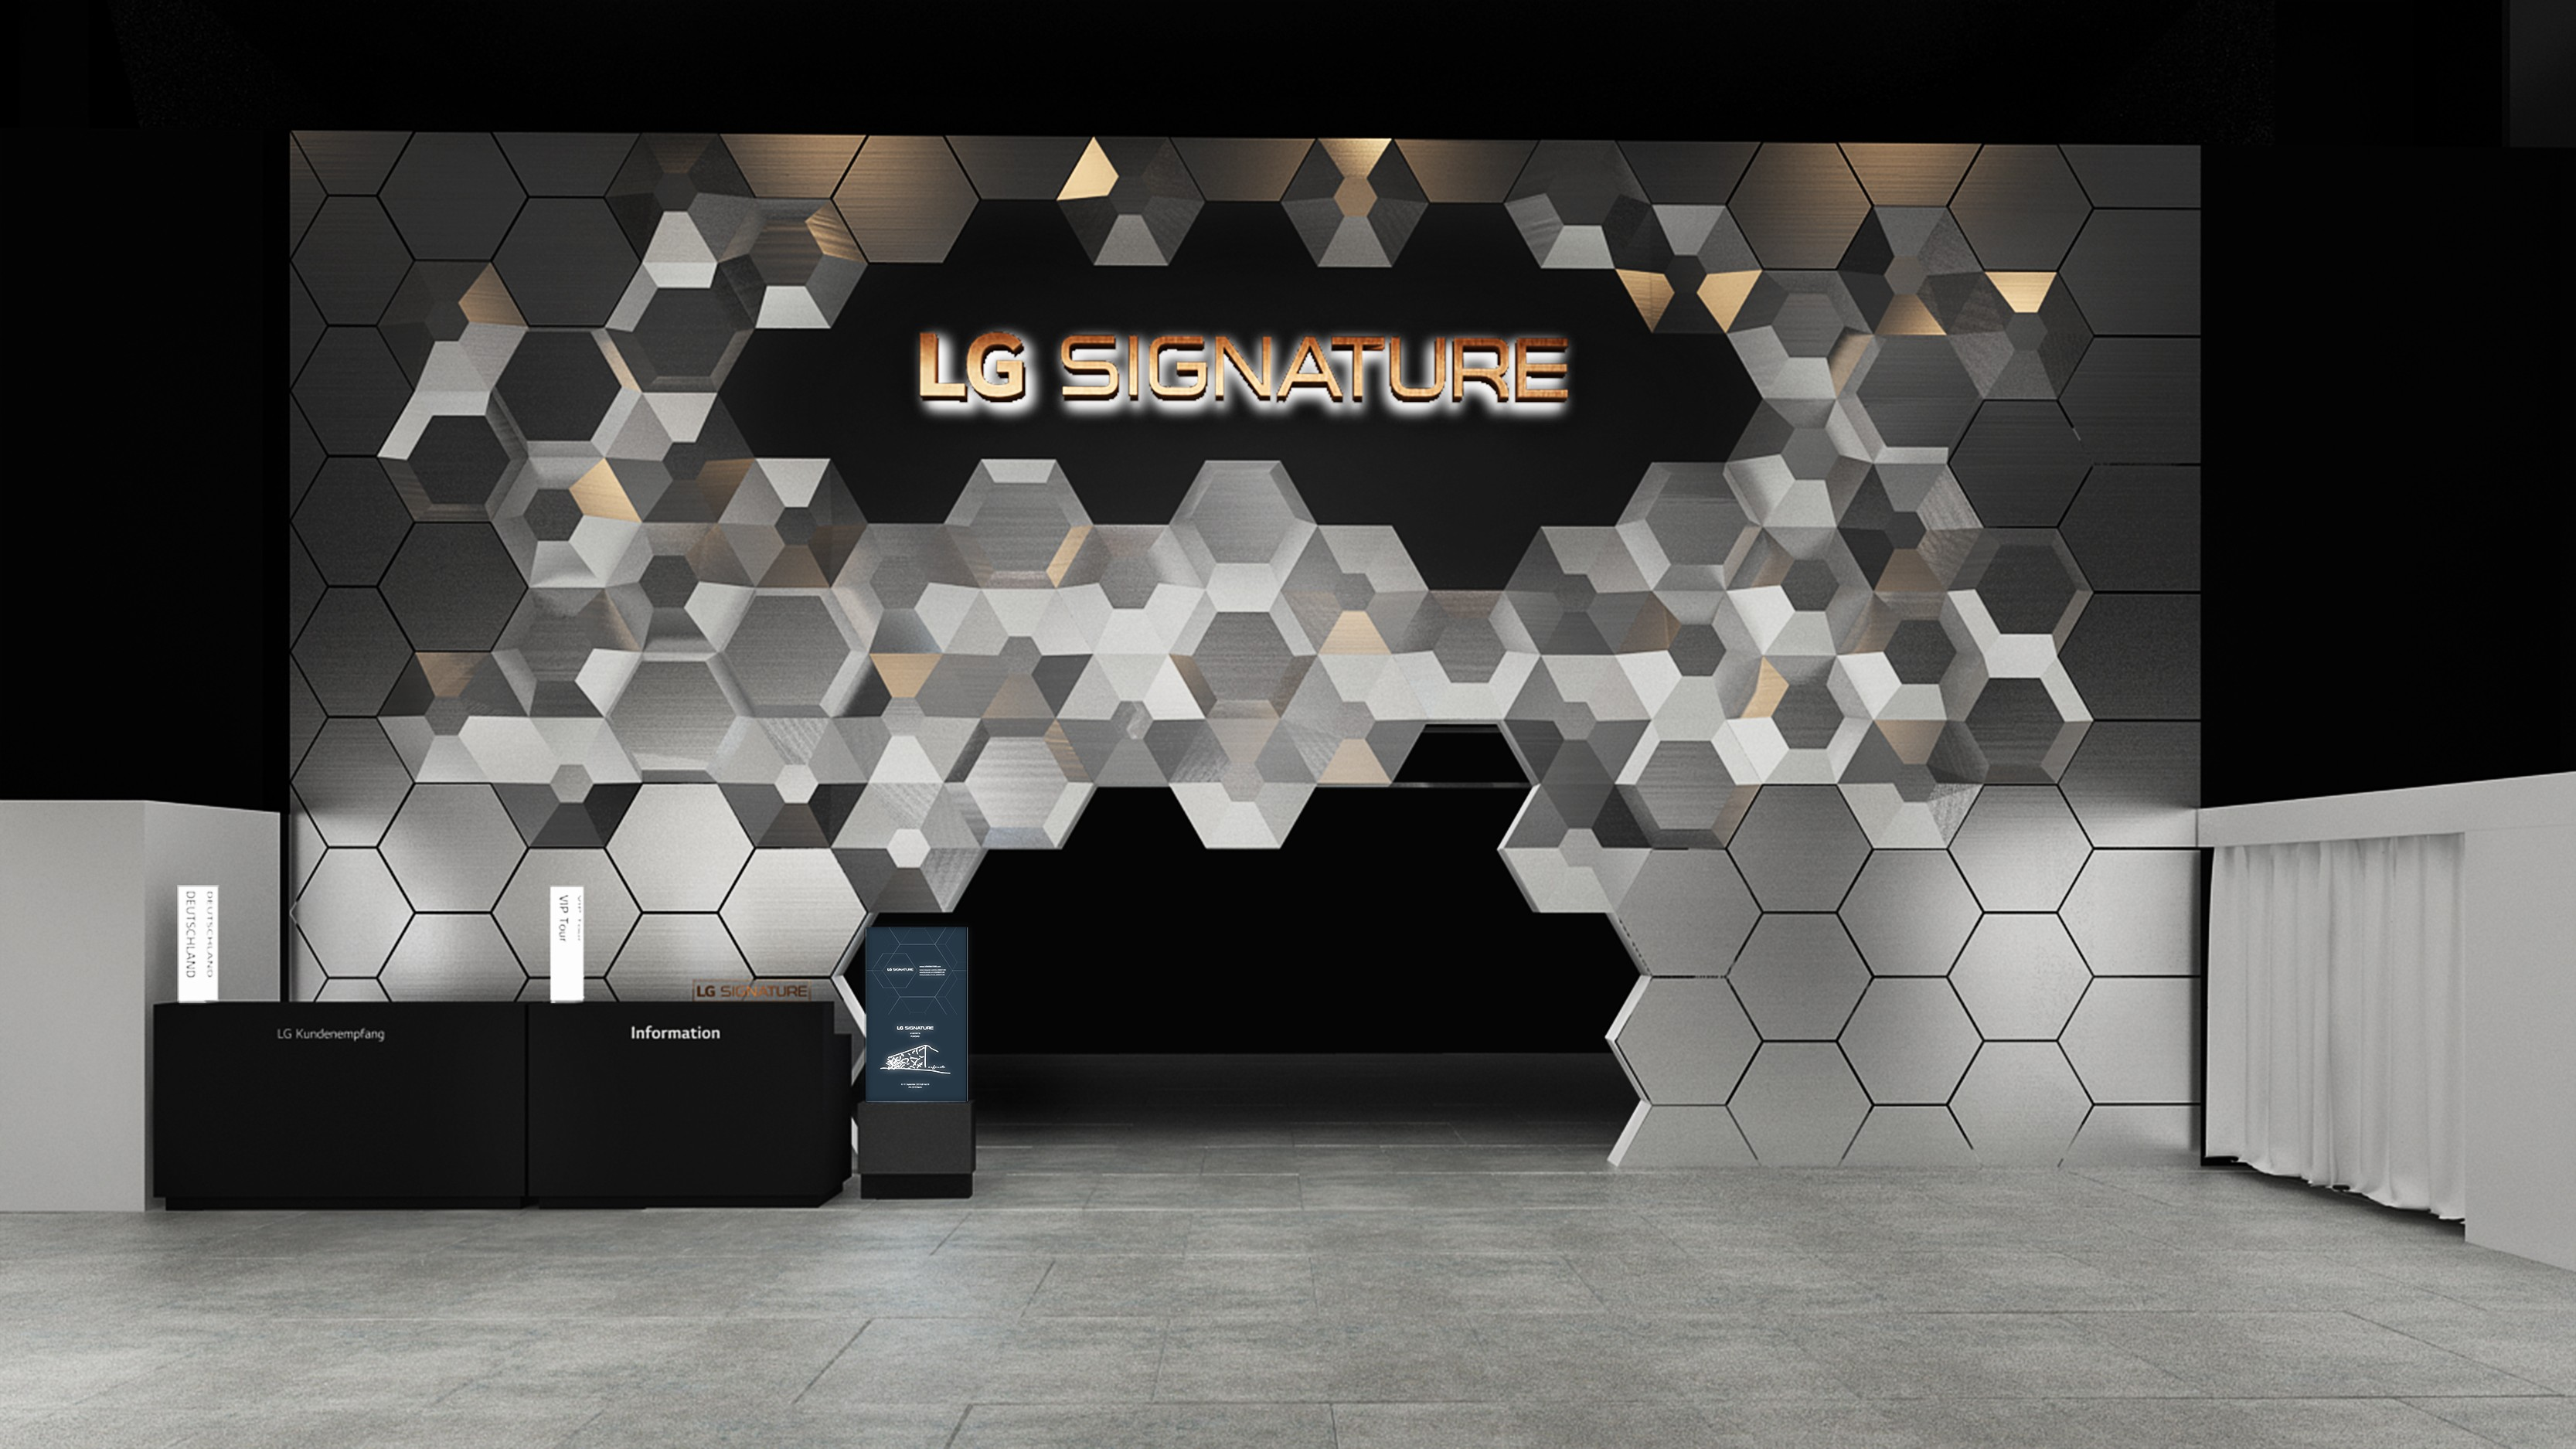 Image of the SIGNATURE booth at IFA 2019 created by LG and international architectural firm Studio Fuksas under the theme of Infinity.